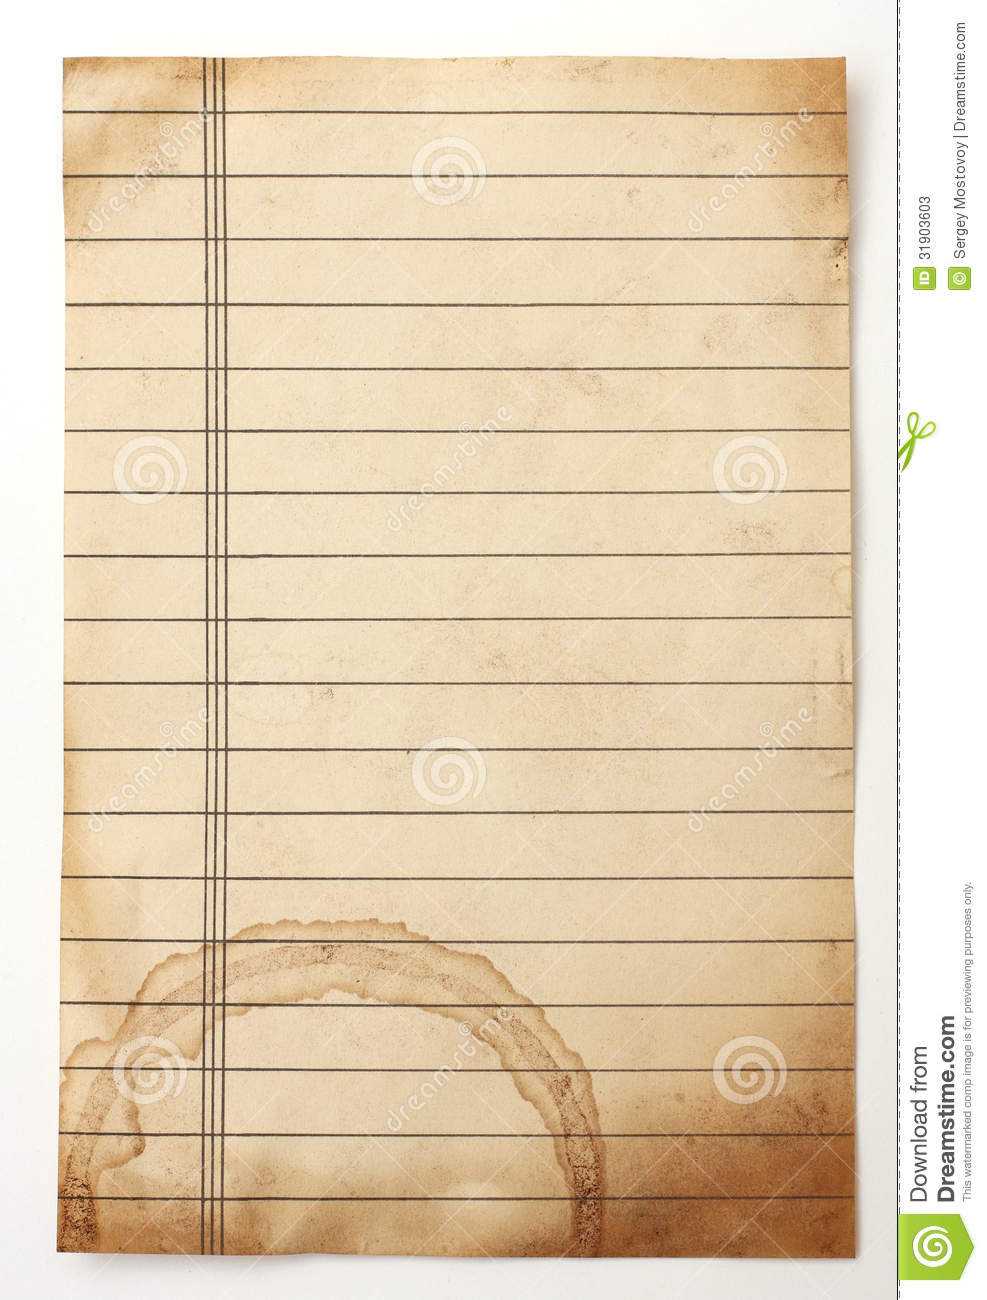 Old Lined Paper Stock Photos - Image: 31903603